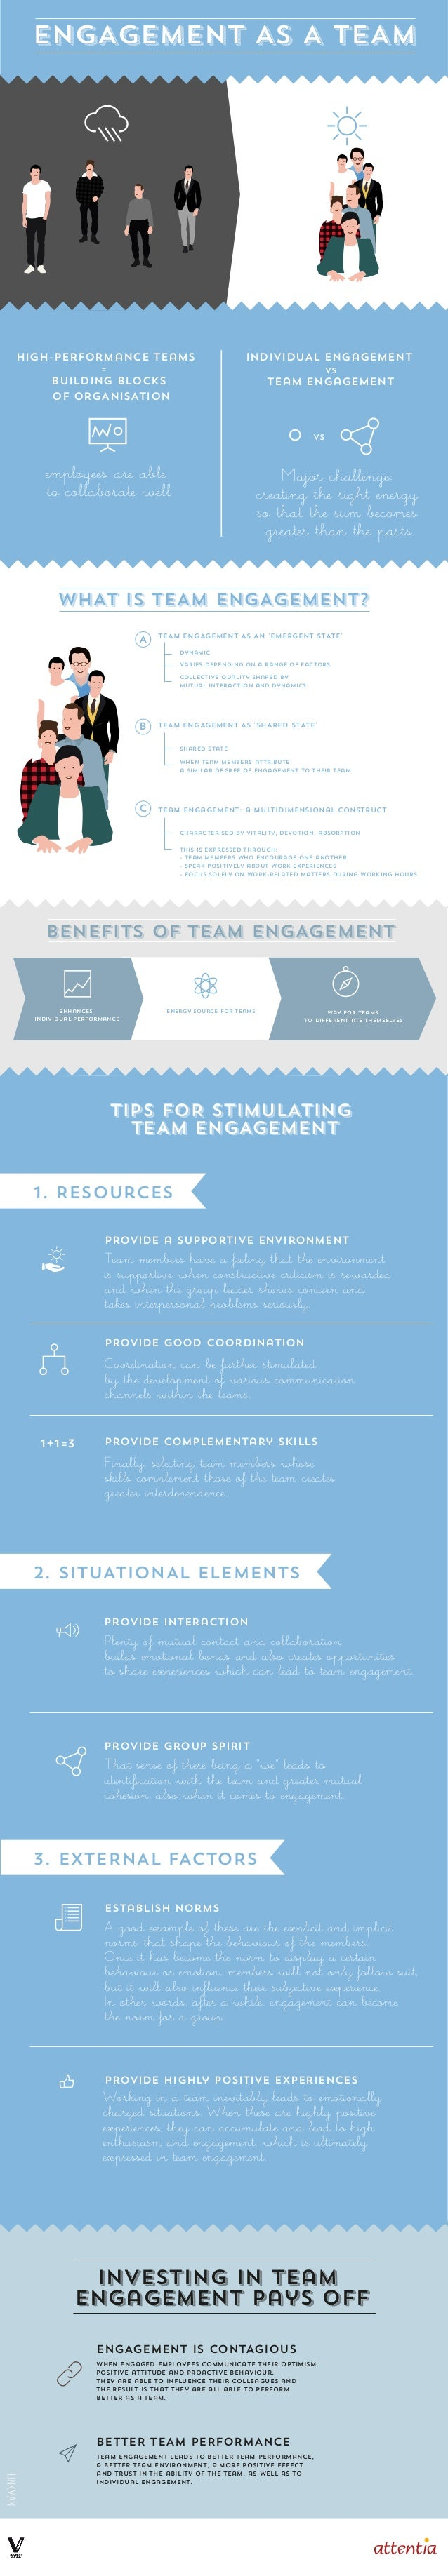 Investing in team engagement pays off WHAT IS TEAM ENGAGEMENT? TEAM ENGAGEMENT AS AN 'EMERGENT STATE' TEAM ENGAGEMENT AS '...